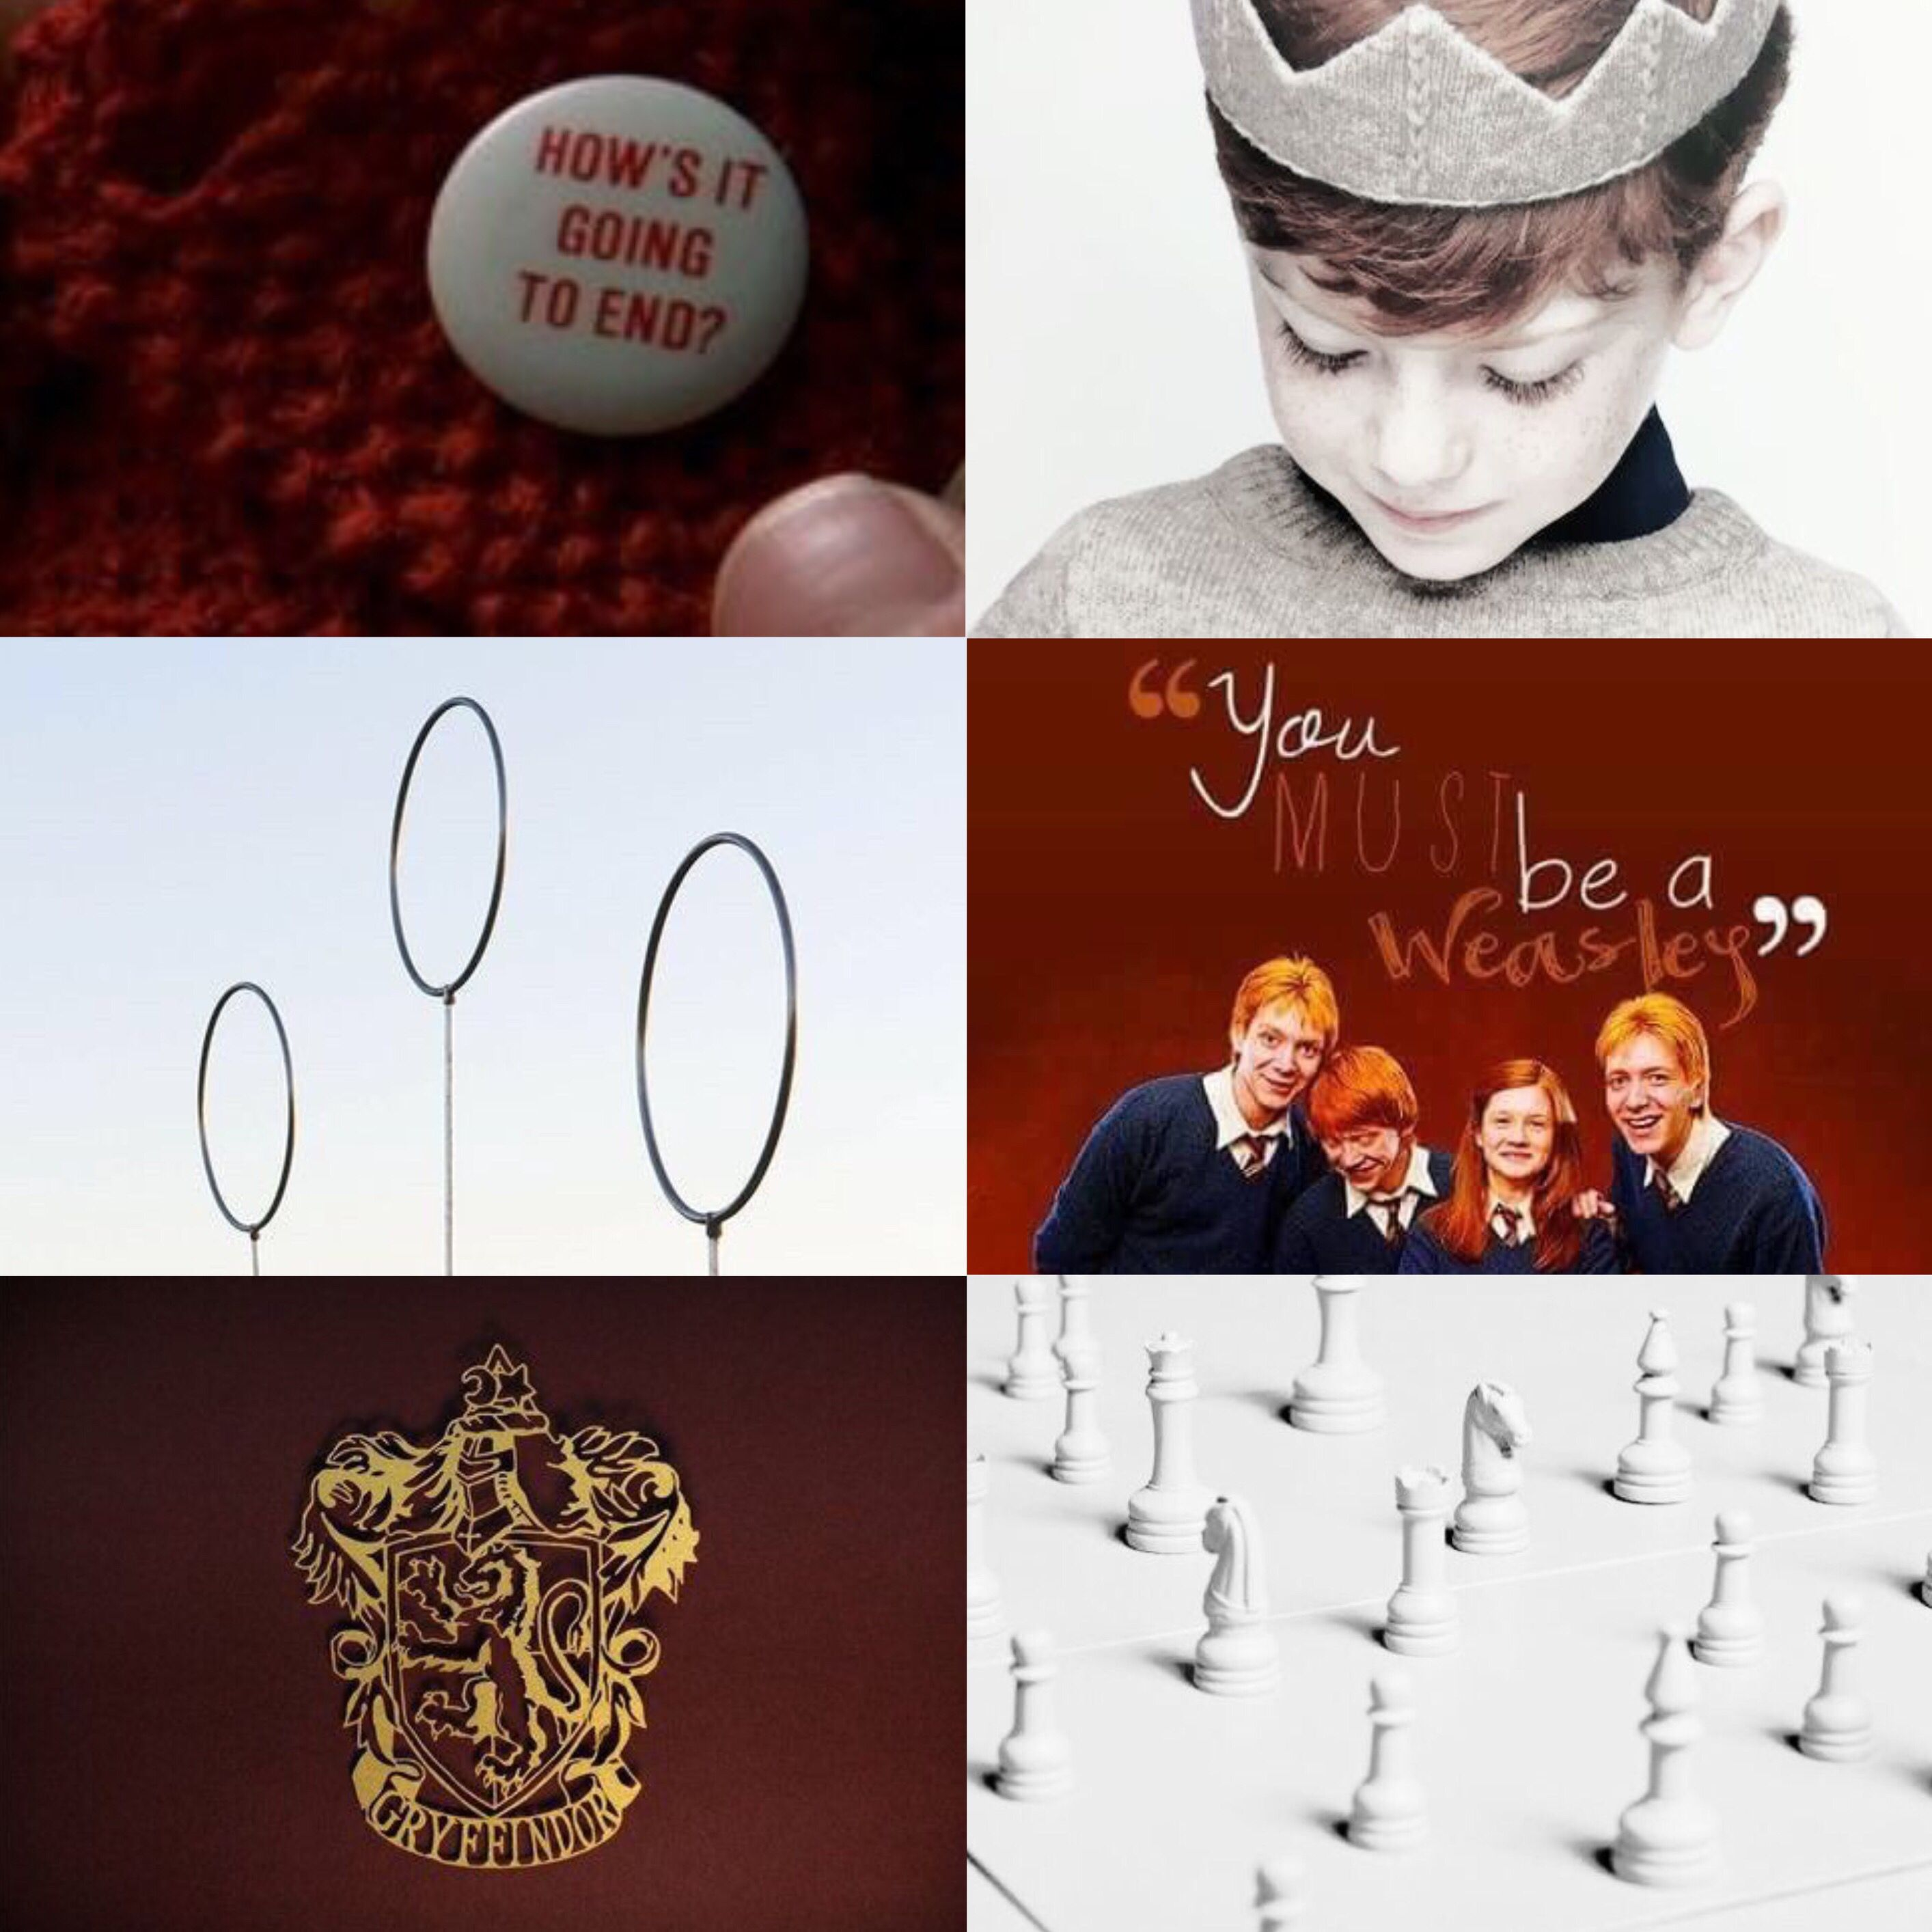 Ron Weasley aesthetic   Harry potter facts, Harry potter aesthetic, Ron  weasley aesthetic